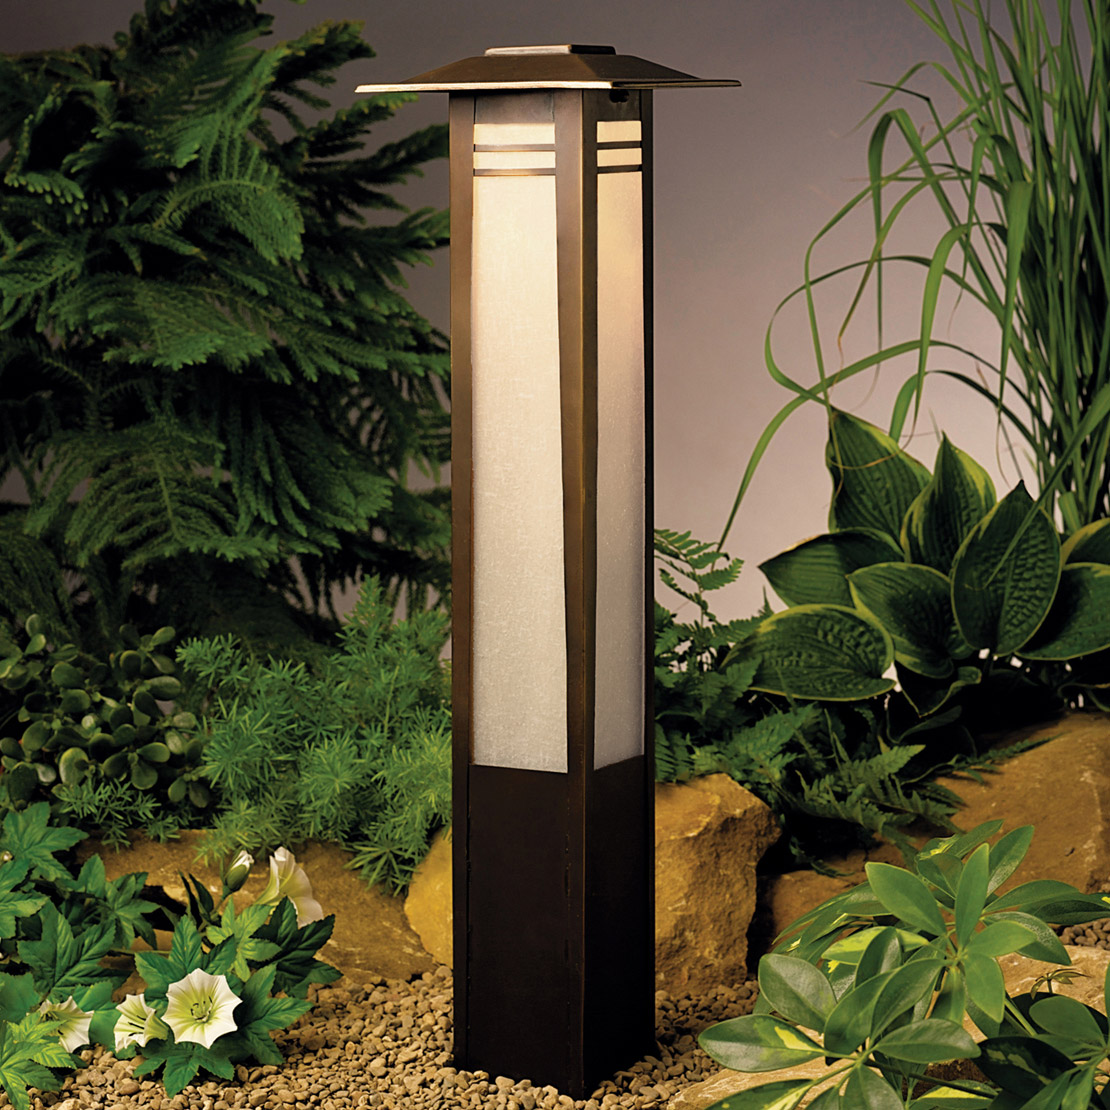 Kichler 15392oz zen garden 12v landscape bollard light for Outdoor landscape lighting fixtures